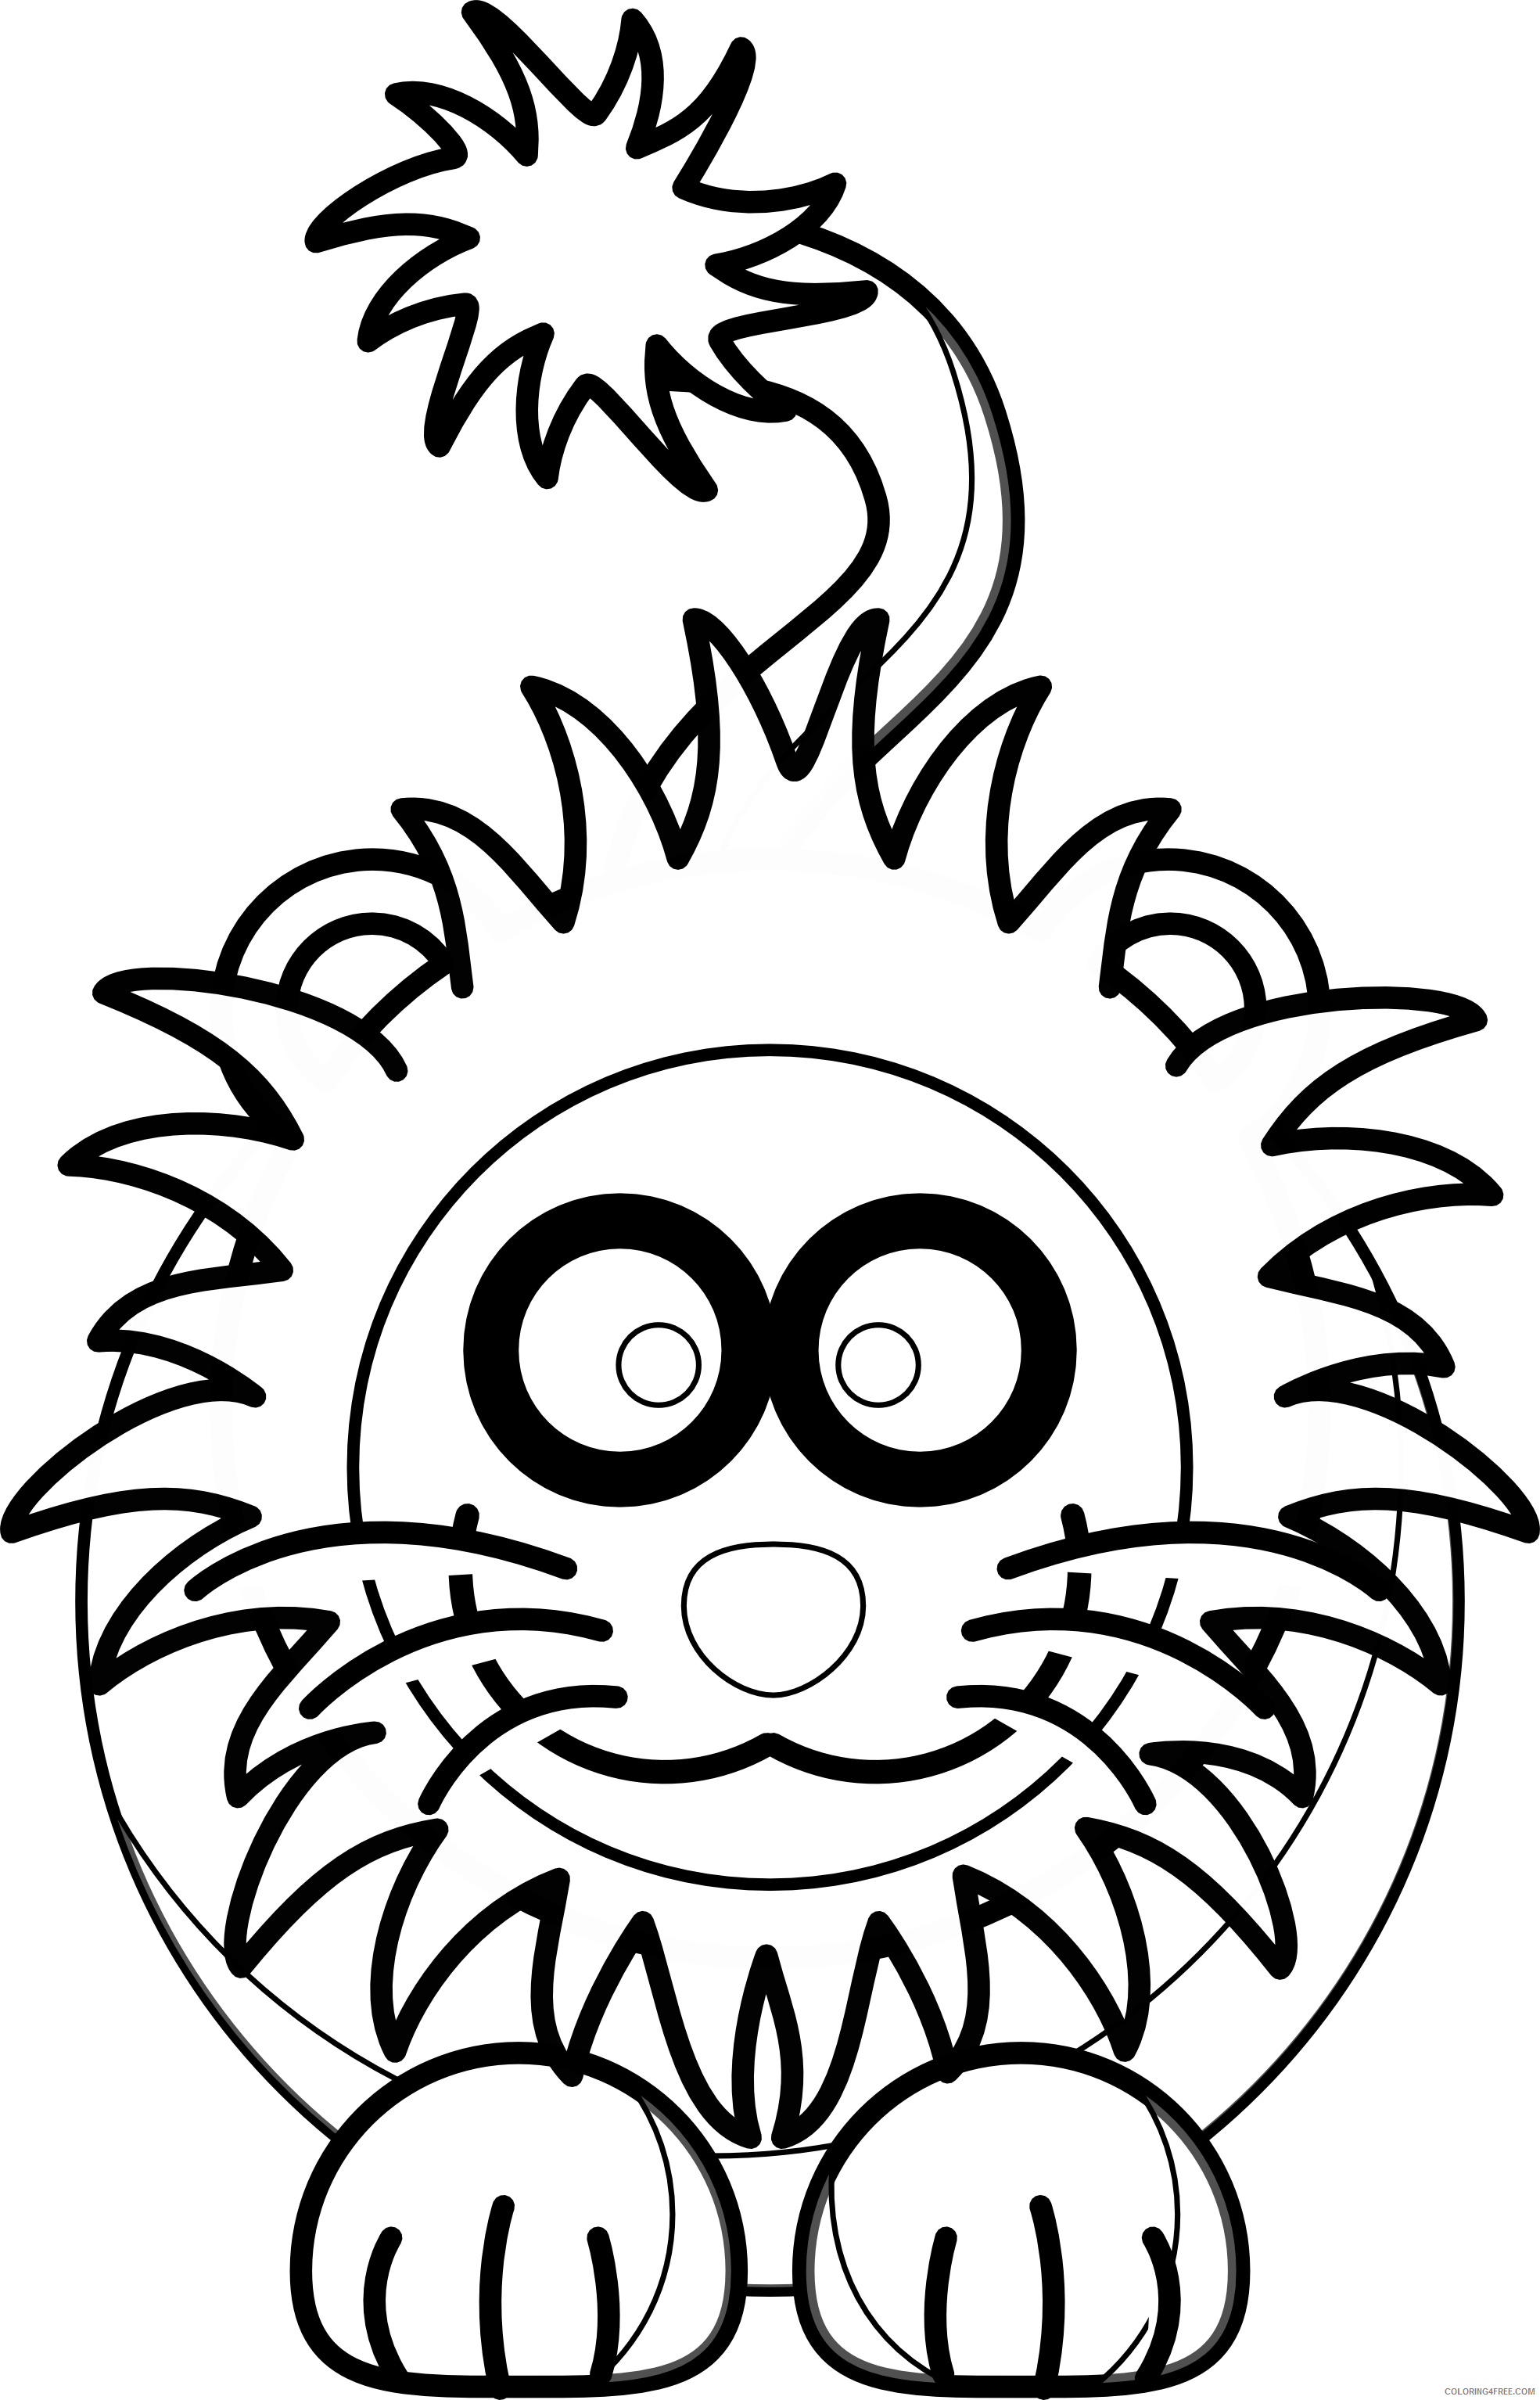 Lion Outline Coloring Pages lion 78 png Printable Coloring4free